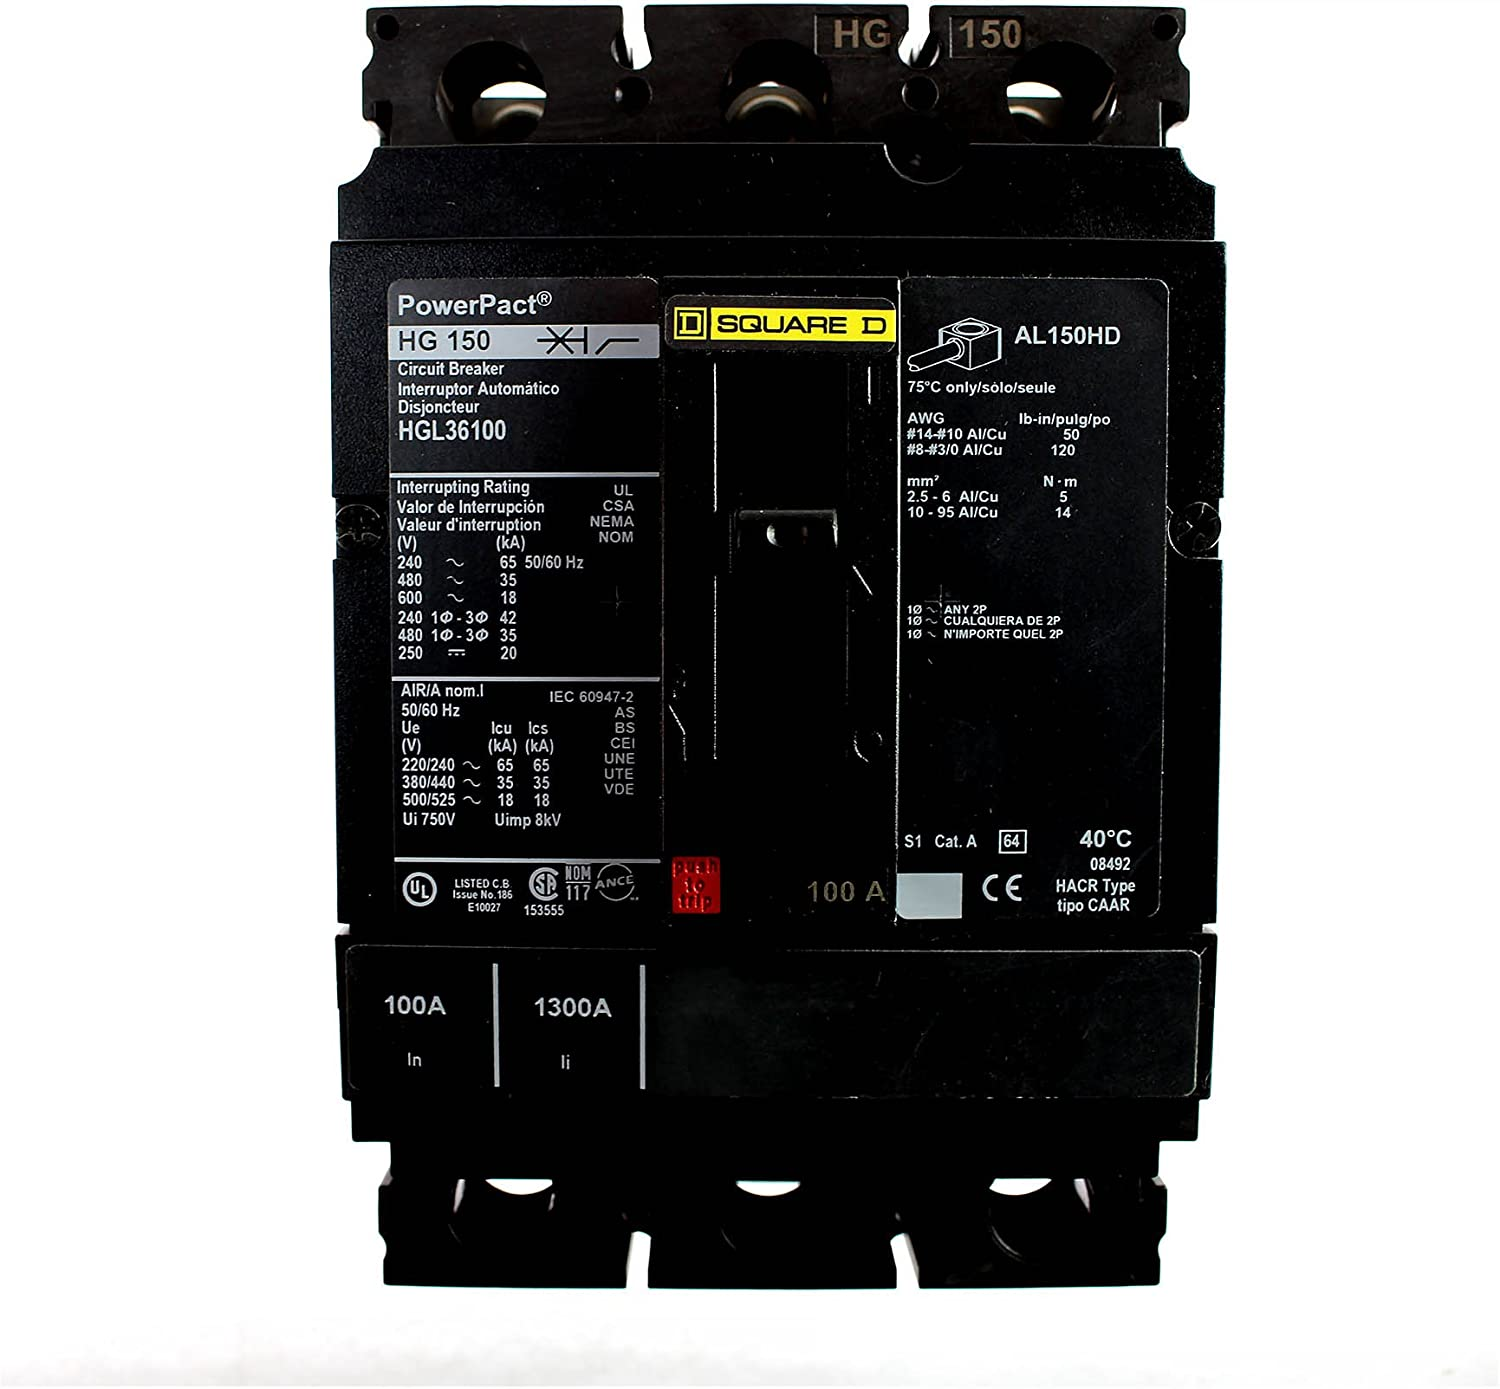 SCHNEIDER ELECTRIC 600-VOLT 100-AMP Molded Lowest price challenge Tampa Mall CASE HGL36100 Circuit